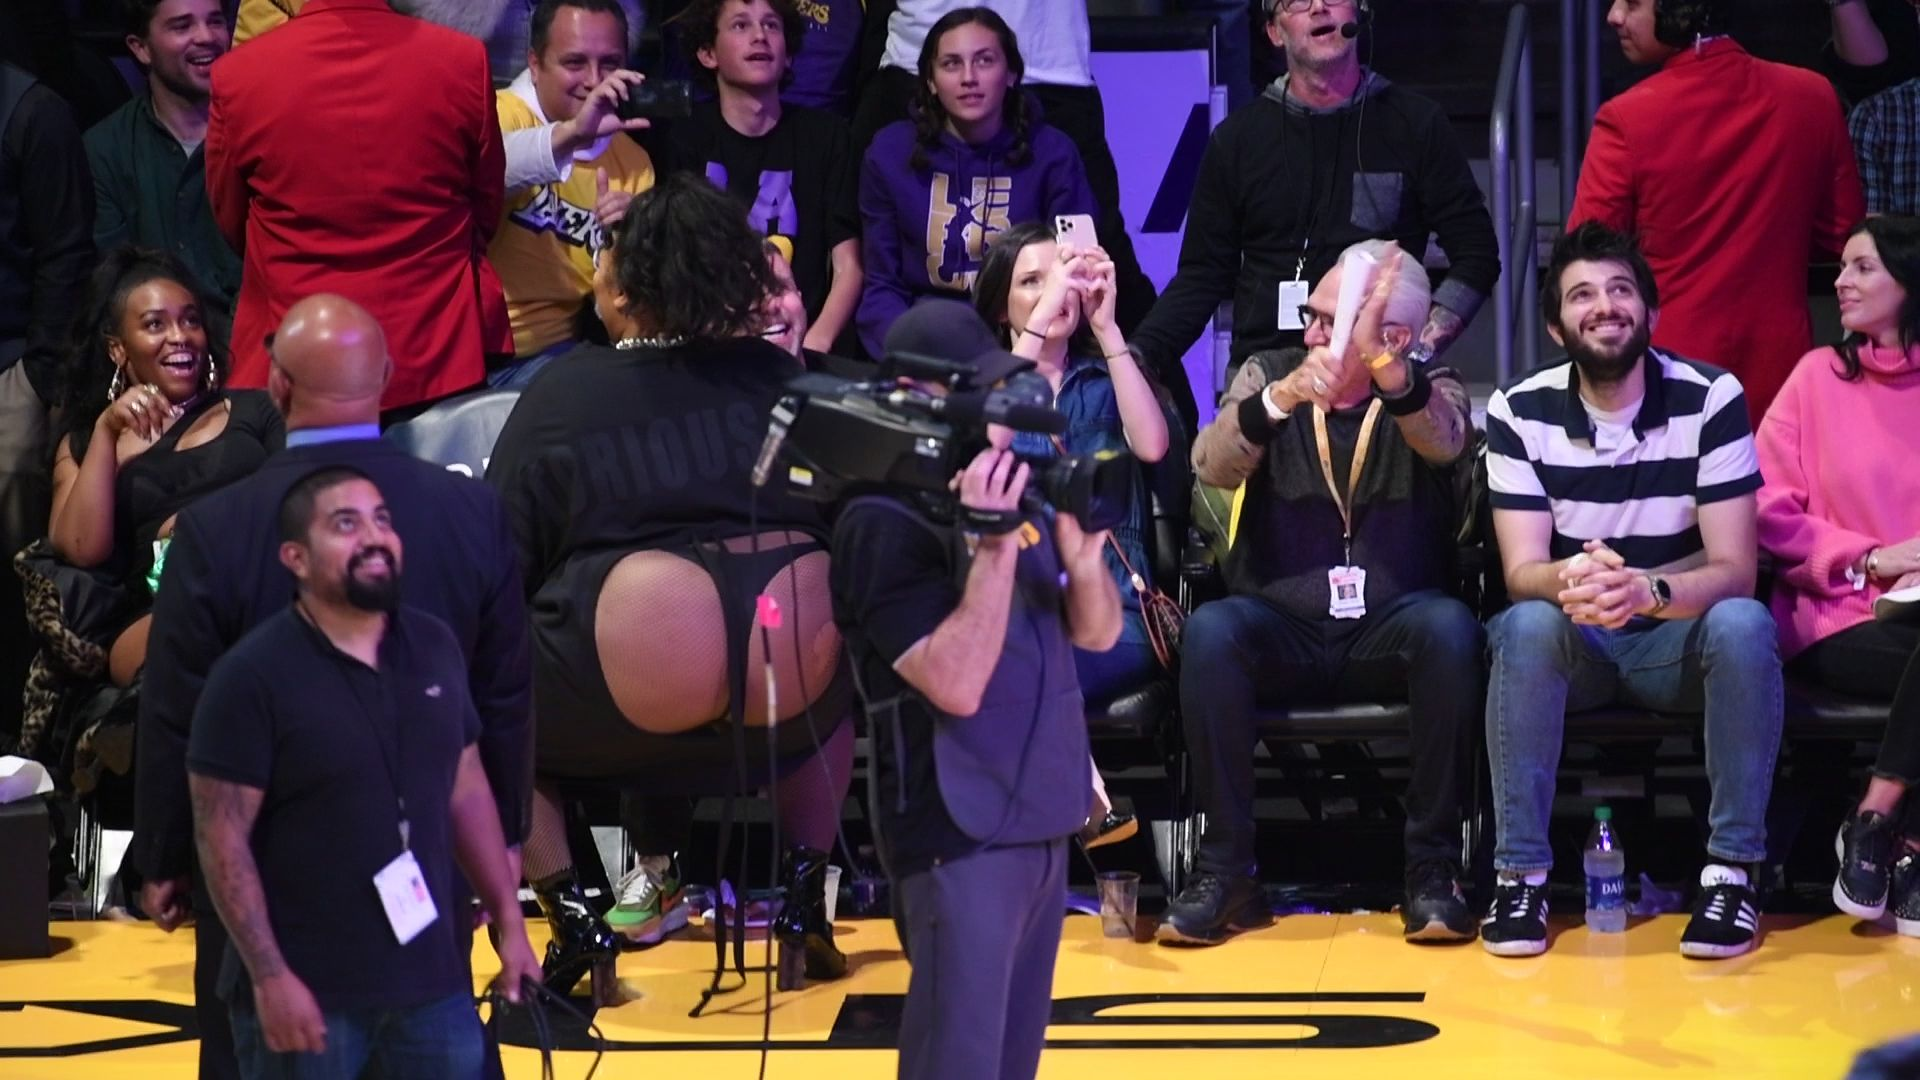 Watch Lizzo Twerk In A Thong On The Jumbotron At The La Lakers Game